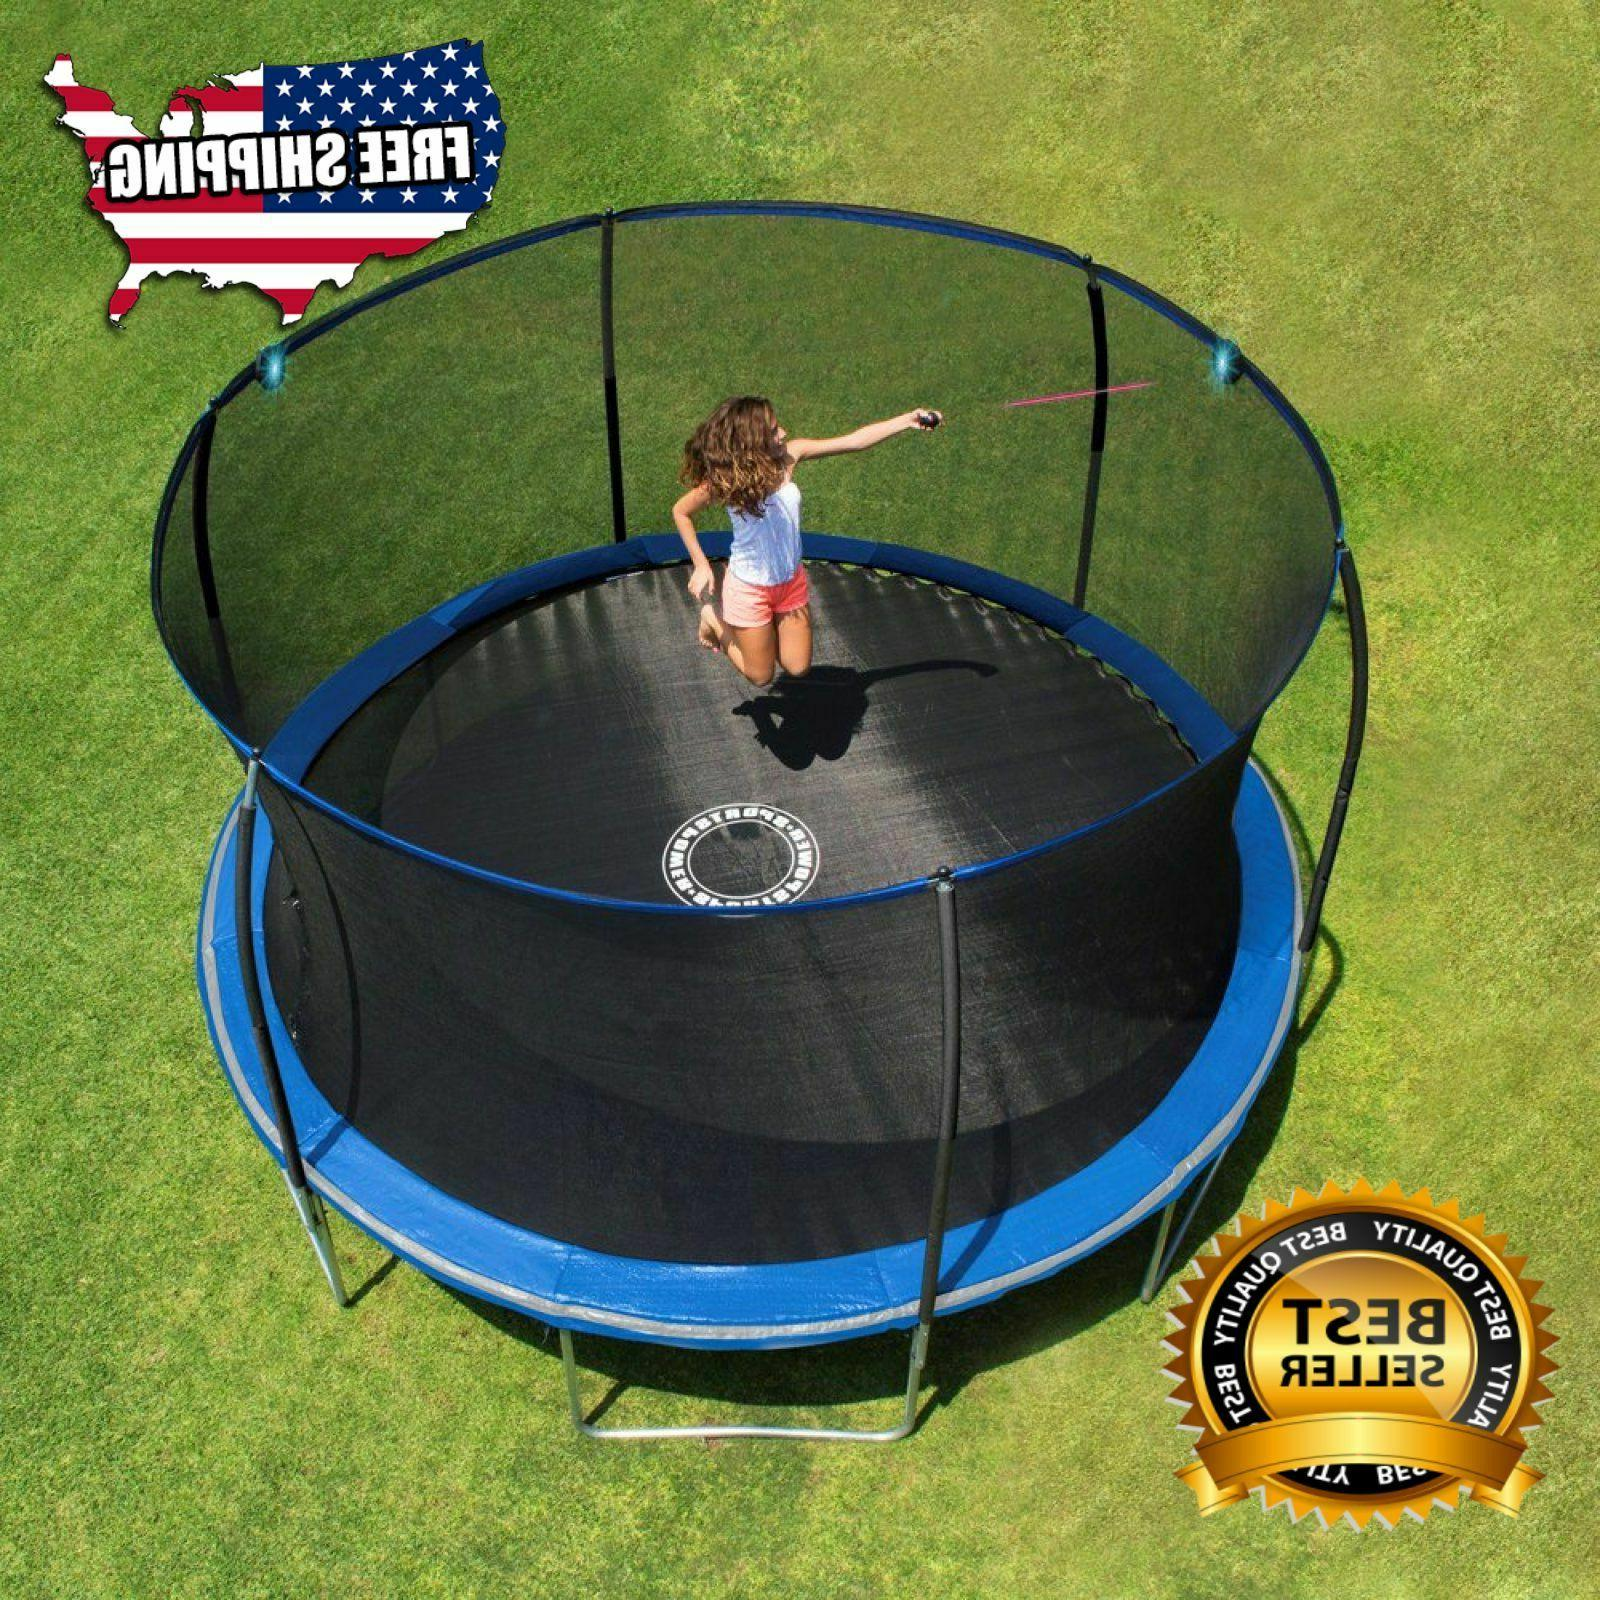 Trampoline, with Electronic Shooter Laser Pro Bounce game 14